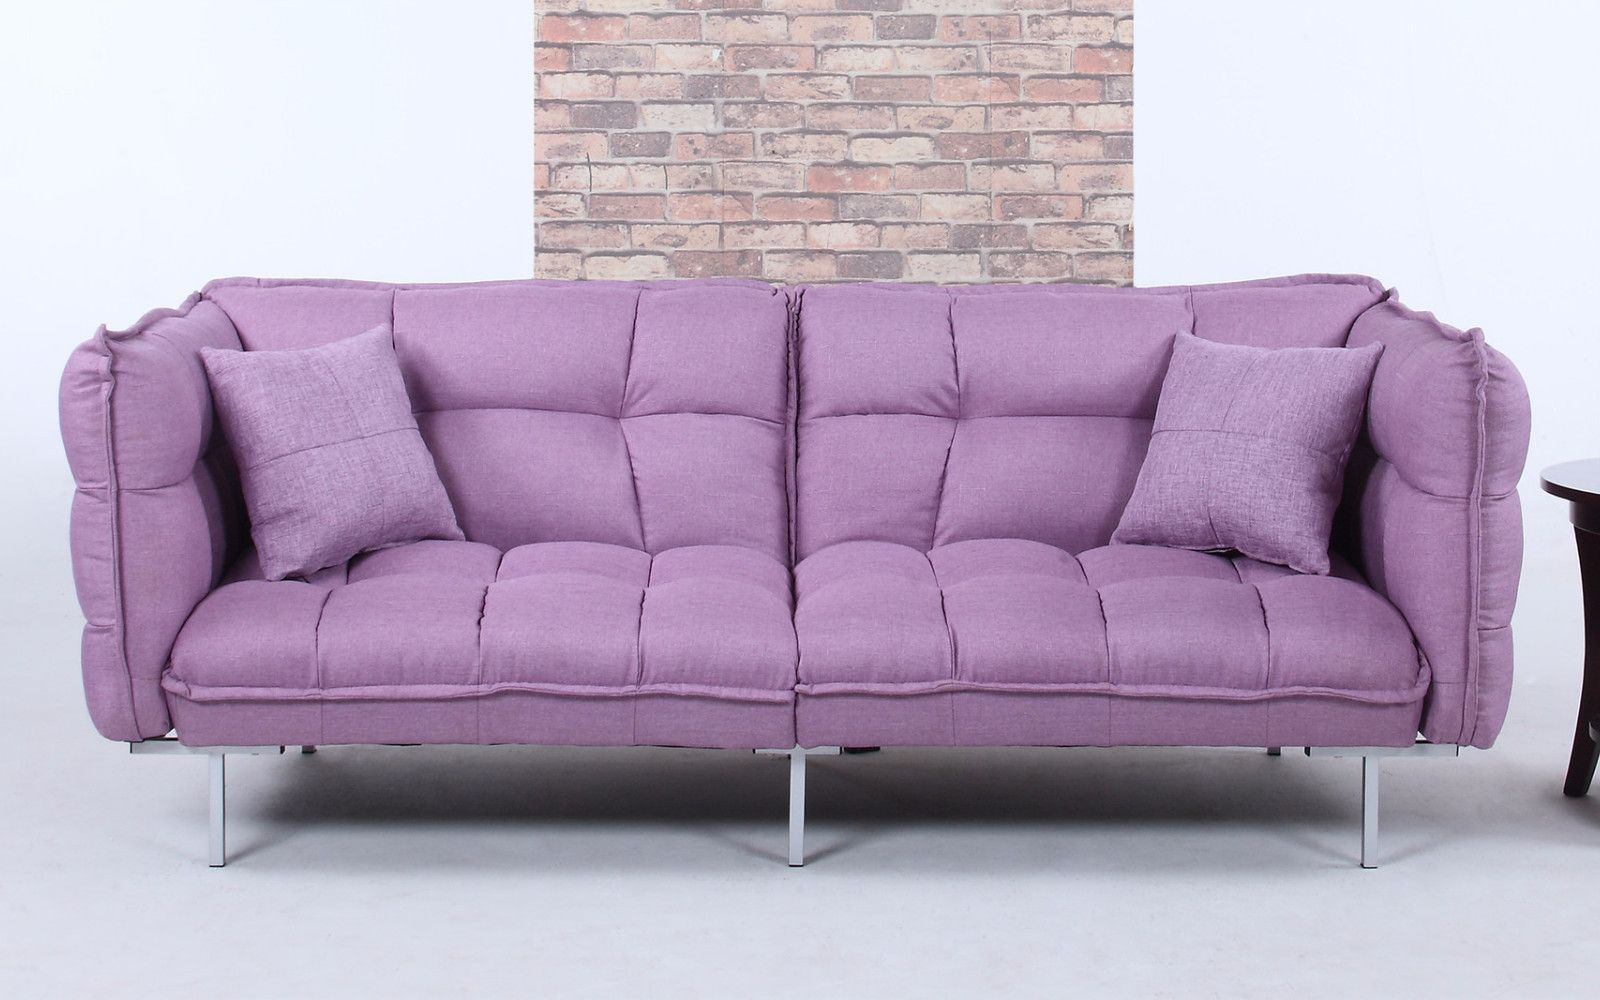 Modern Plush Tufted Linen Splitback Living Room Sleeper Futon Purple Futon Modern Fabric Sofa Tufted Couch